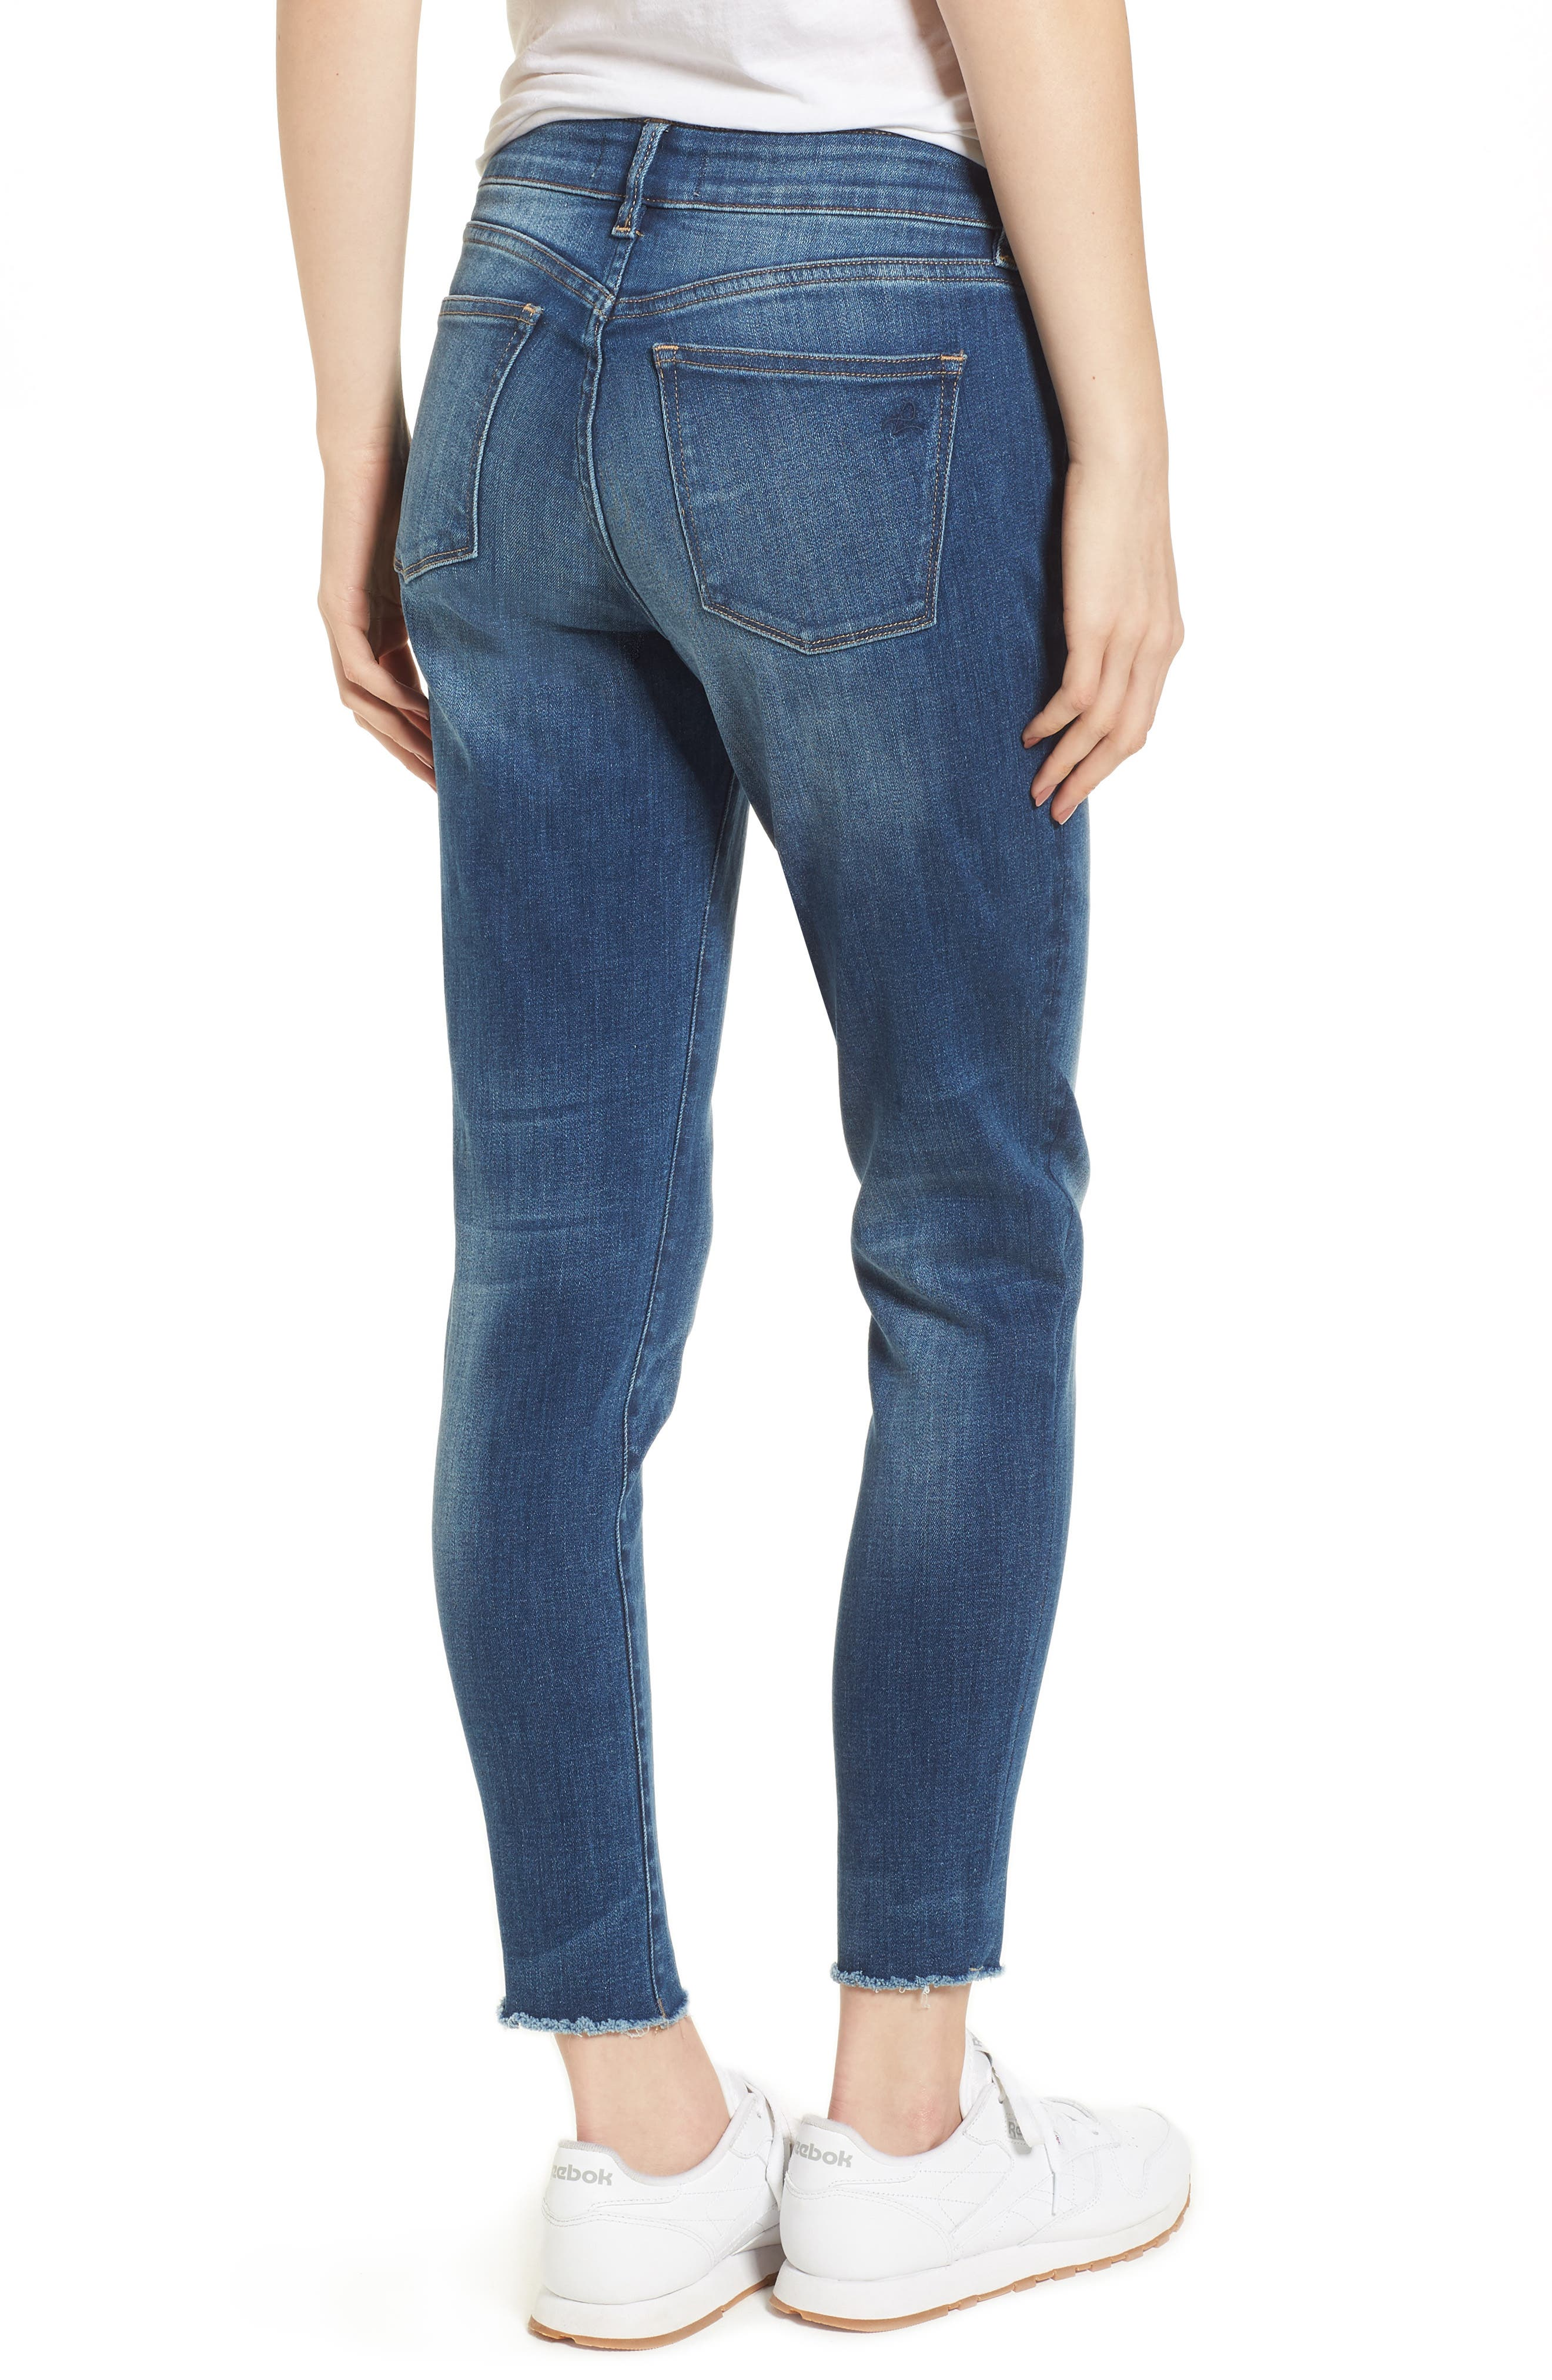 Coco Curvy Ankle Skinny Jeans,                             Alternate thumbnail 2, color,                             Callahan